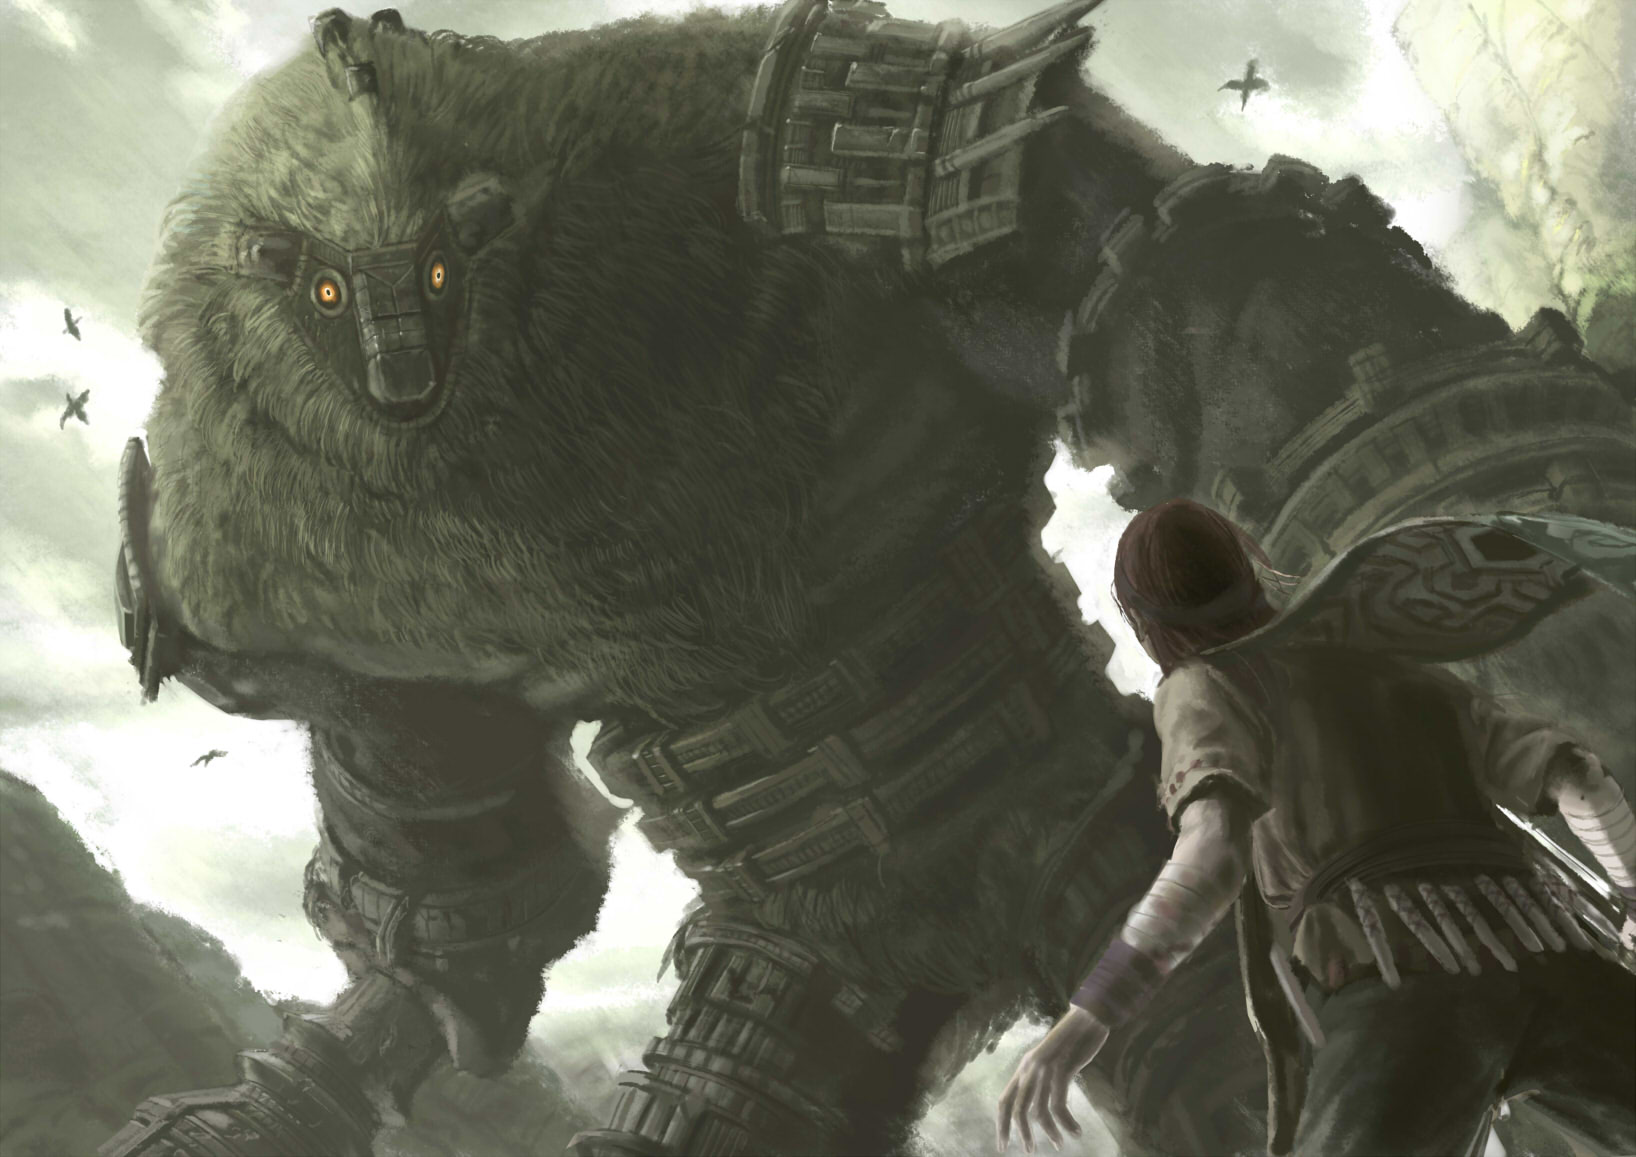 Shadow of the Colossus/#860916 - Zerochan